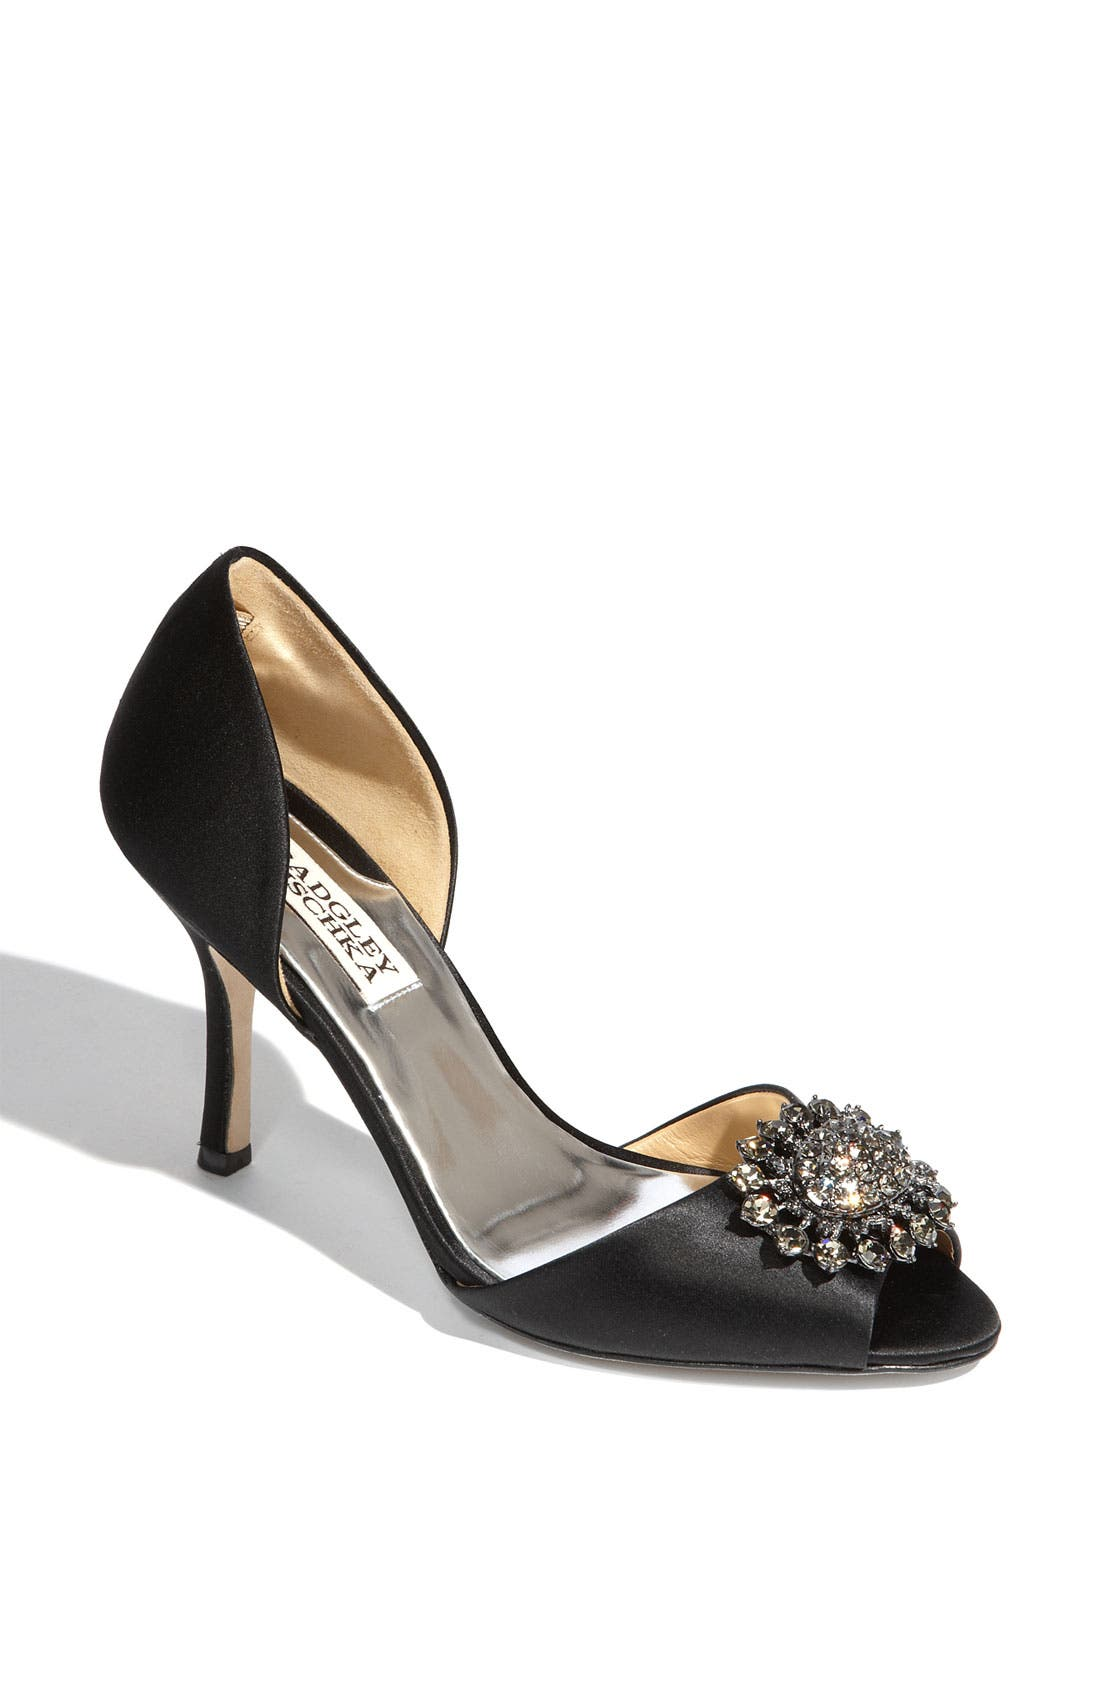 Badgley Mischka 'Lacie' Pump,                             Main thumbnail 1, color,                             015